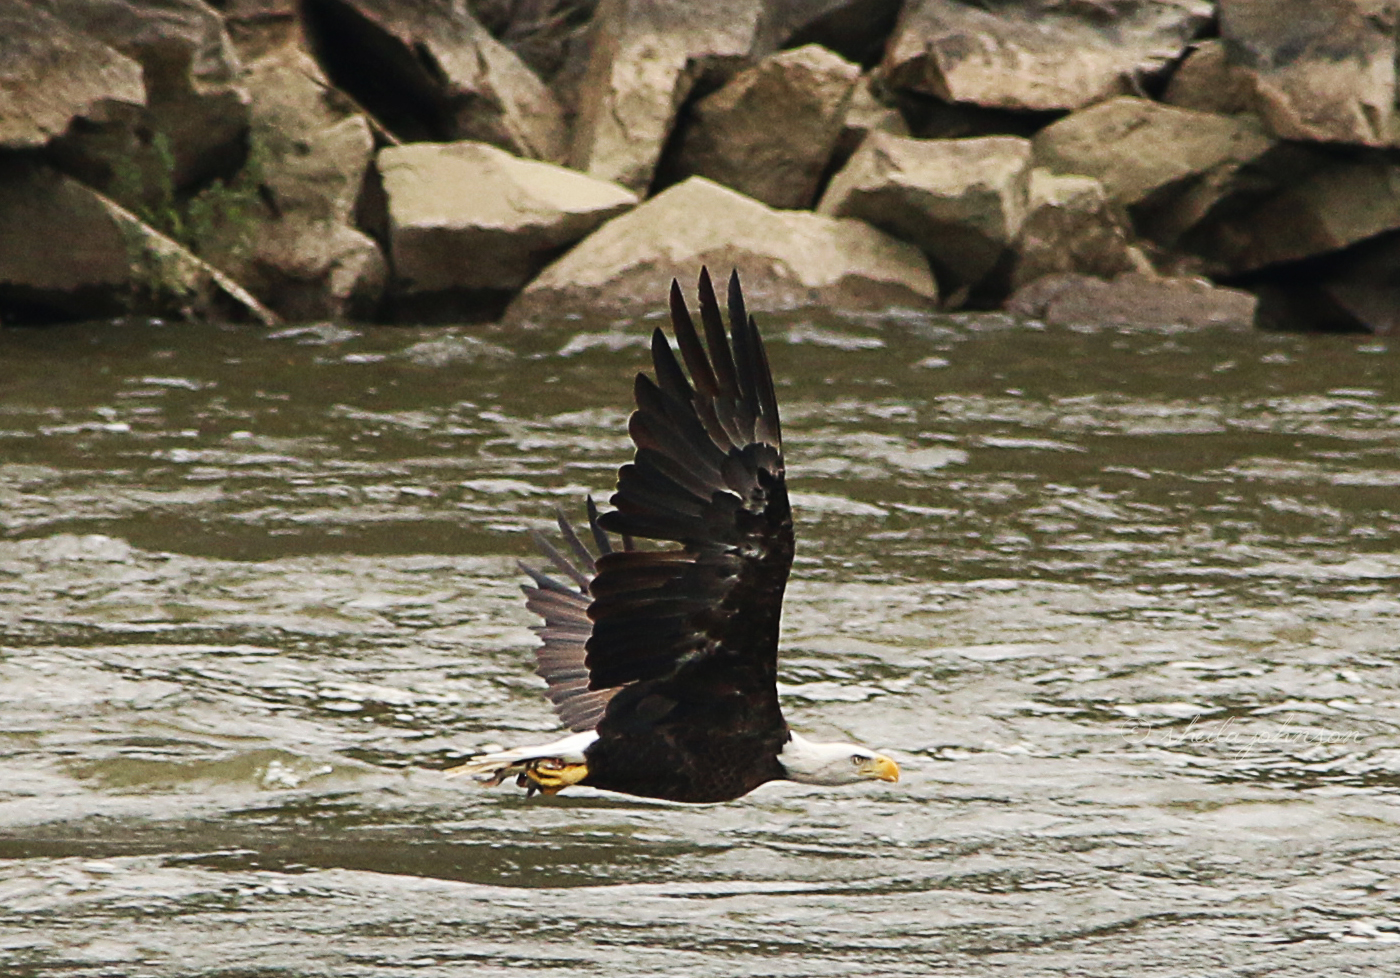 This Bald Eagle Is Looking Pretty Fierce, Though His Catch Of The Day Is Awfully Tiny. I Guess Just Being An Eagle Is Reason Enough To Put Your Fierce Face On.